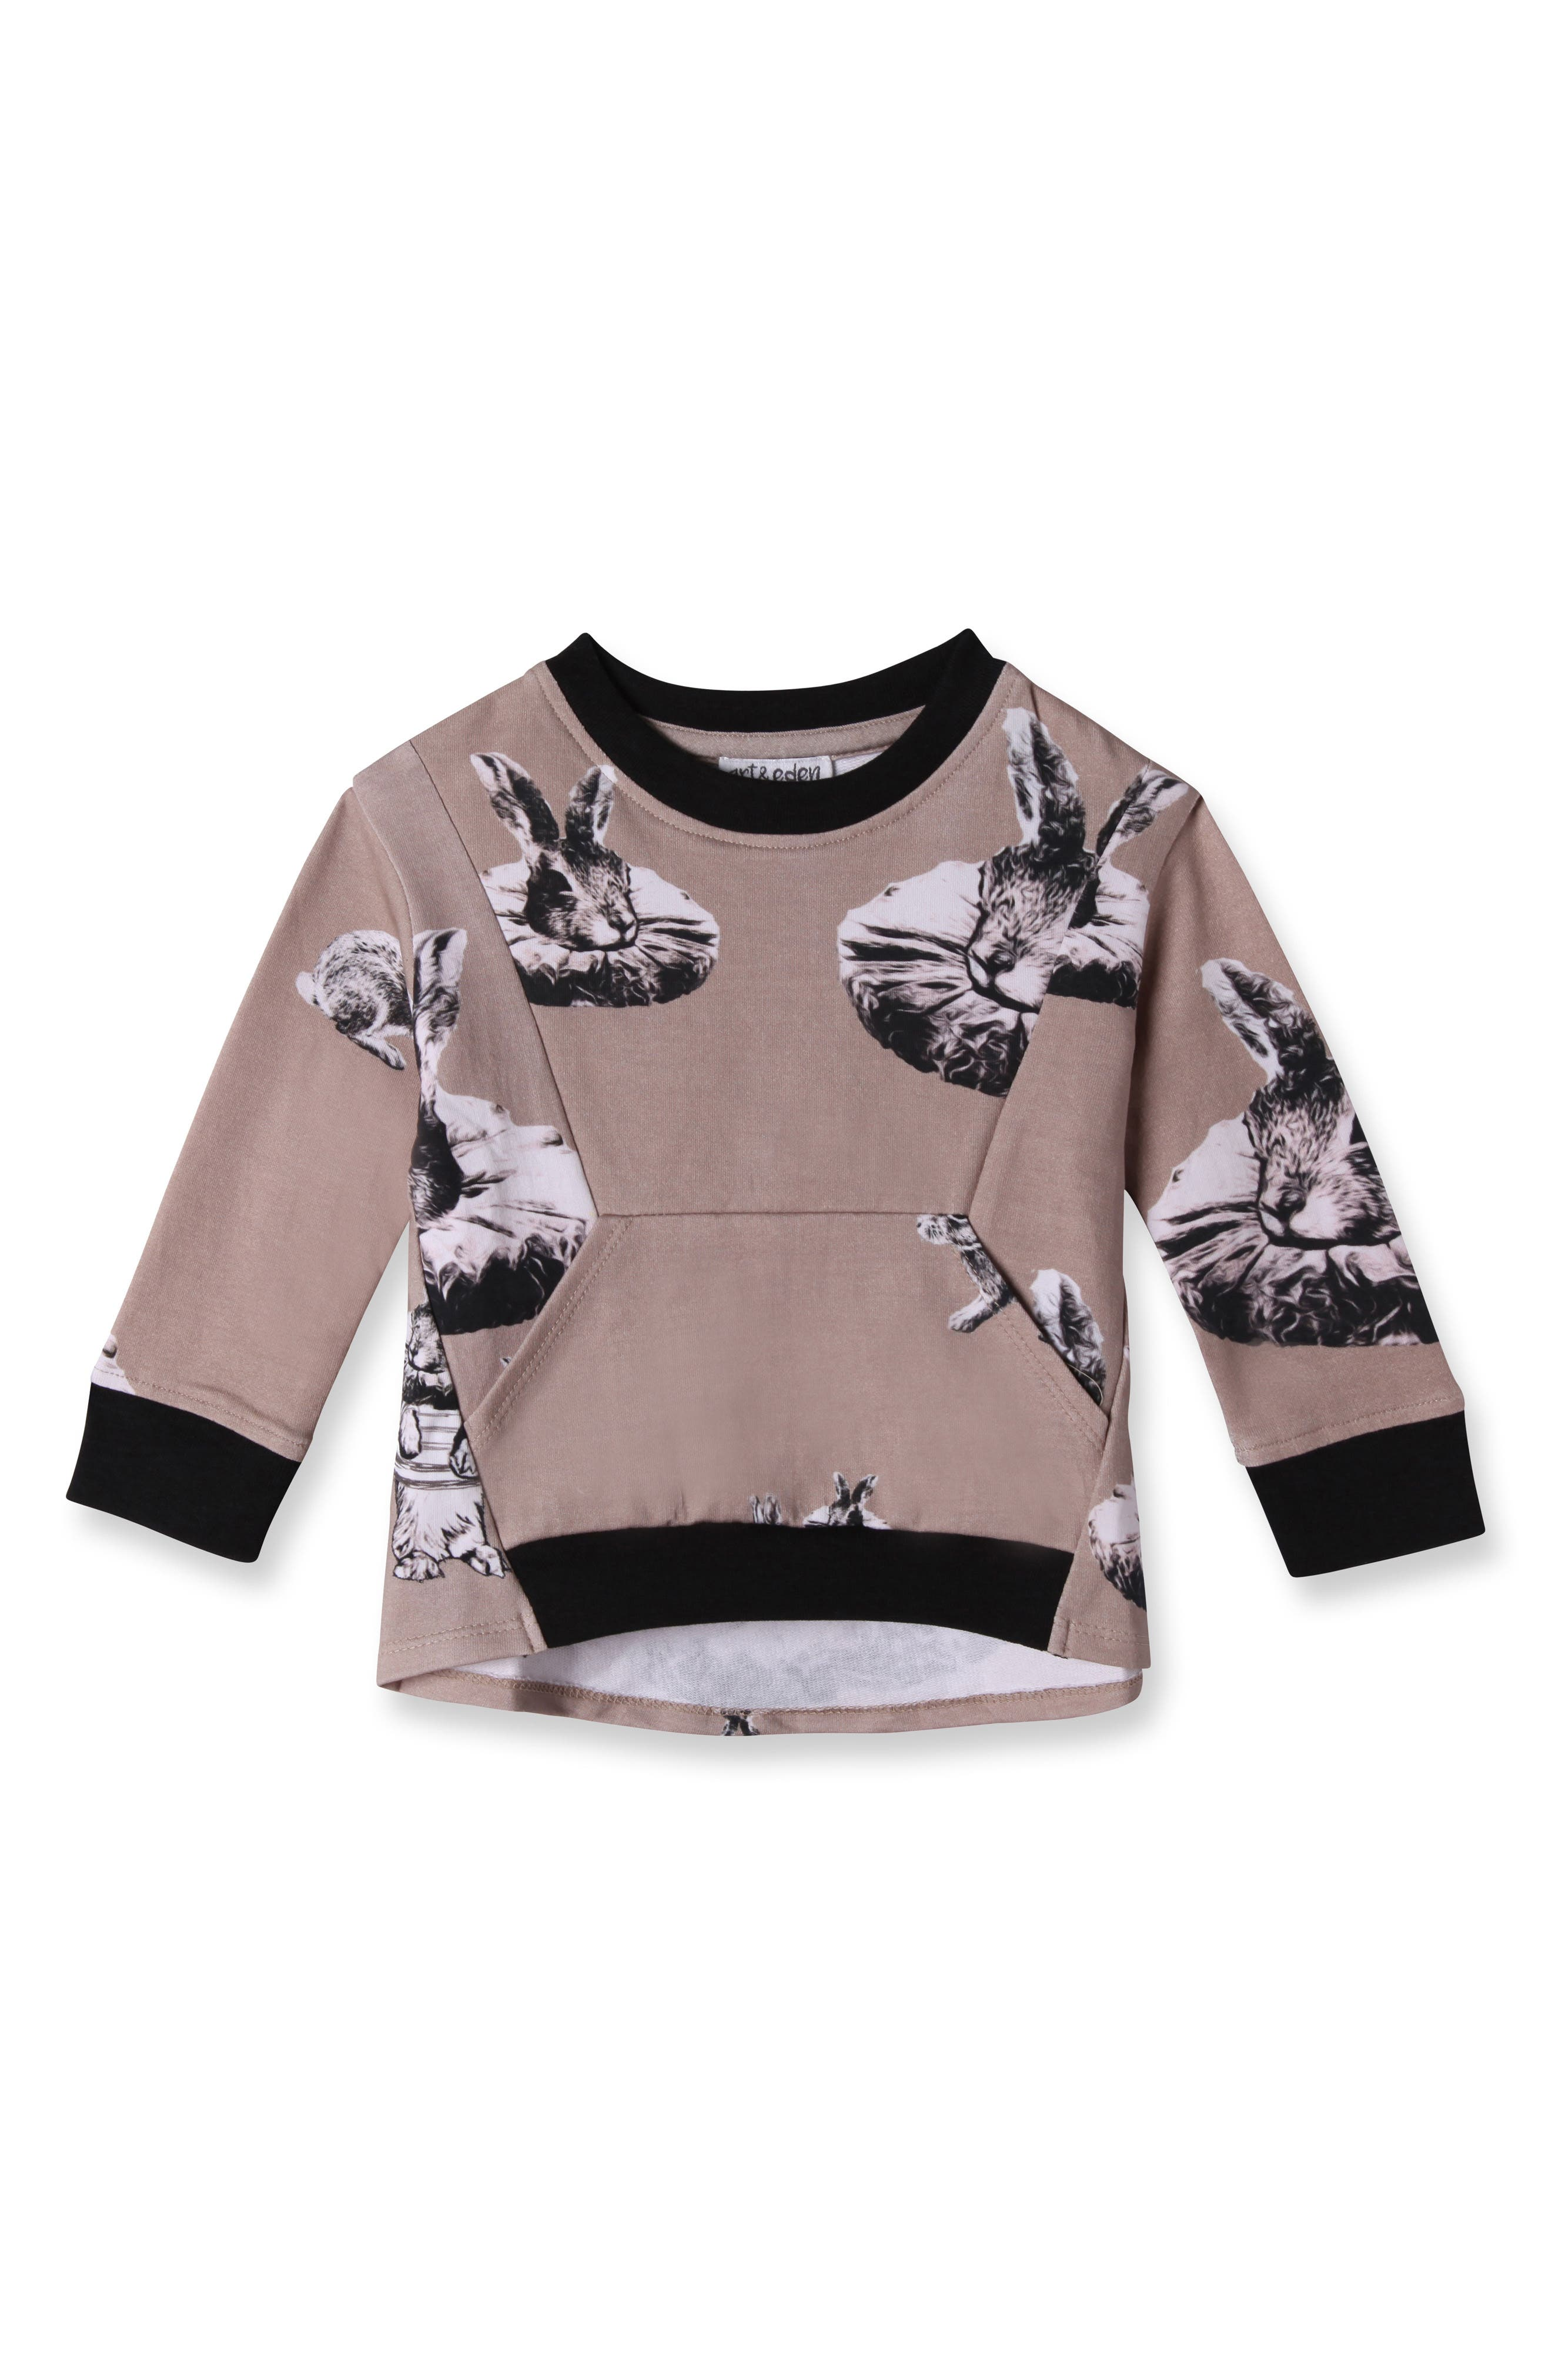 Alternate Image 1 Selected - Art & Eden Amelia Sweatshirt (Baby Girls)